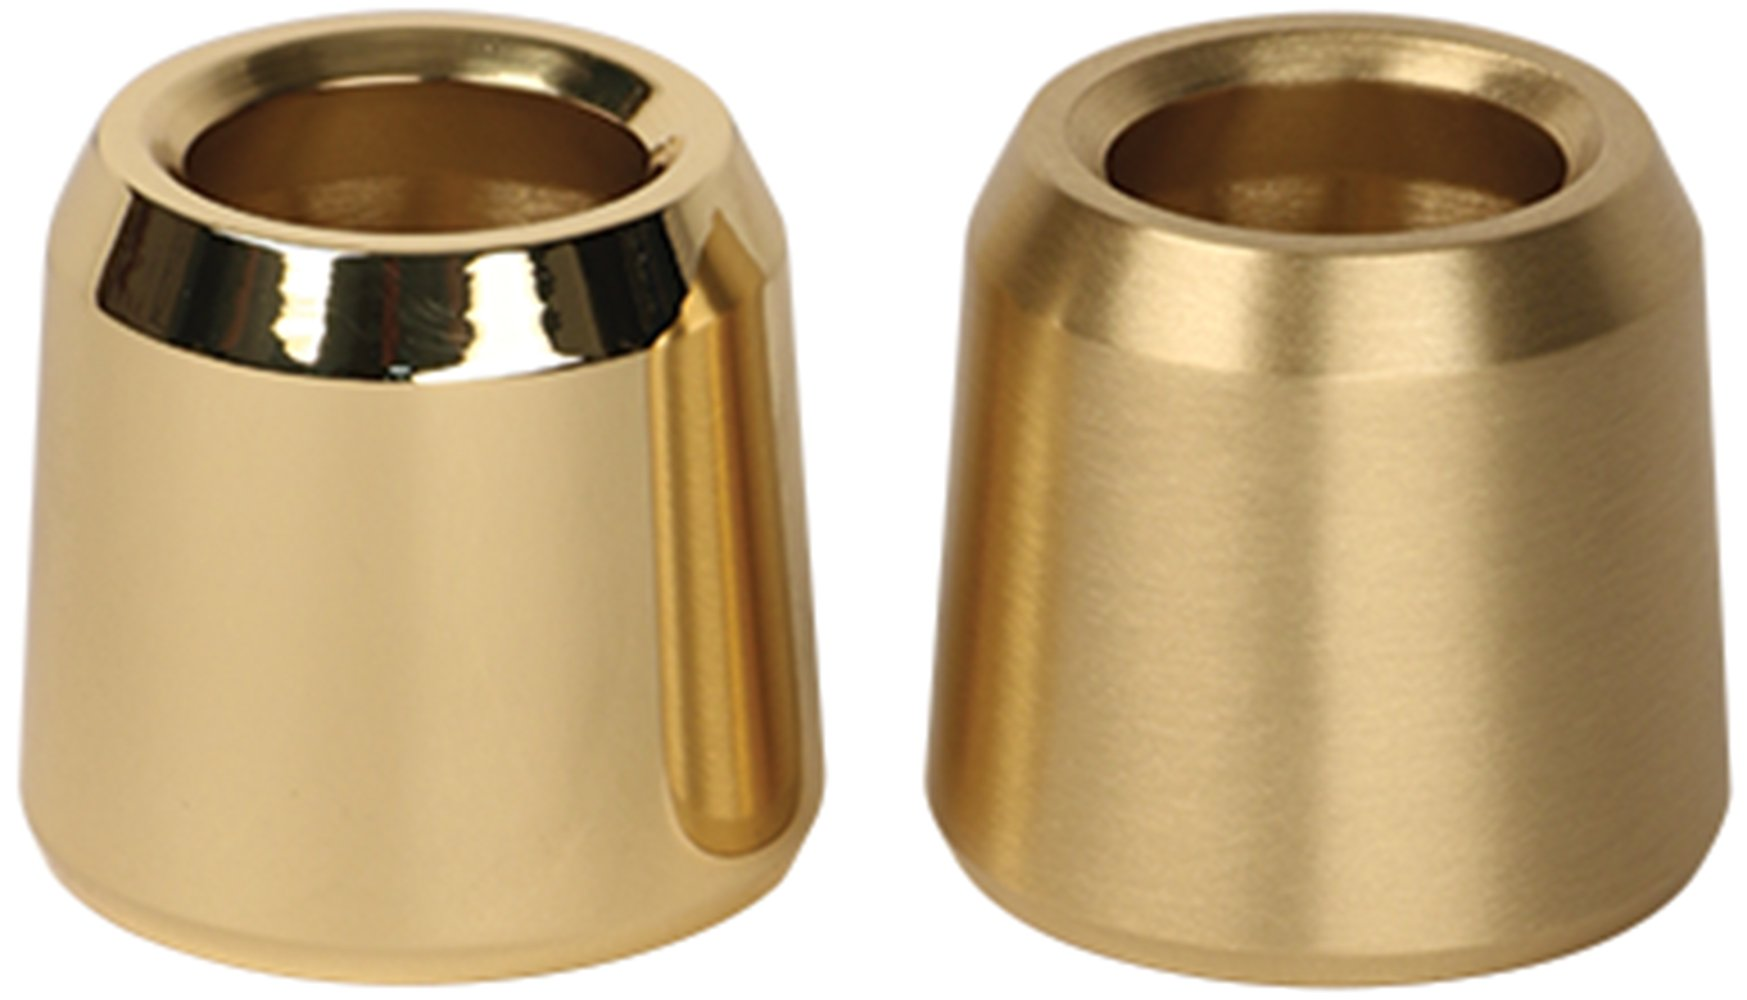 Candle Follower - Satin Brass